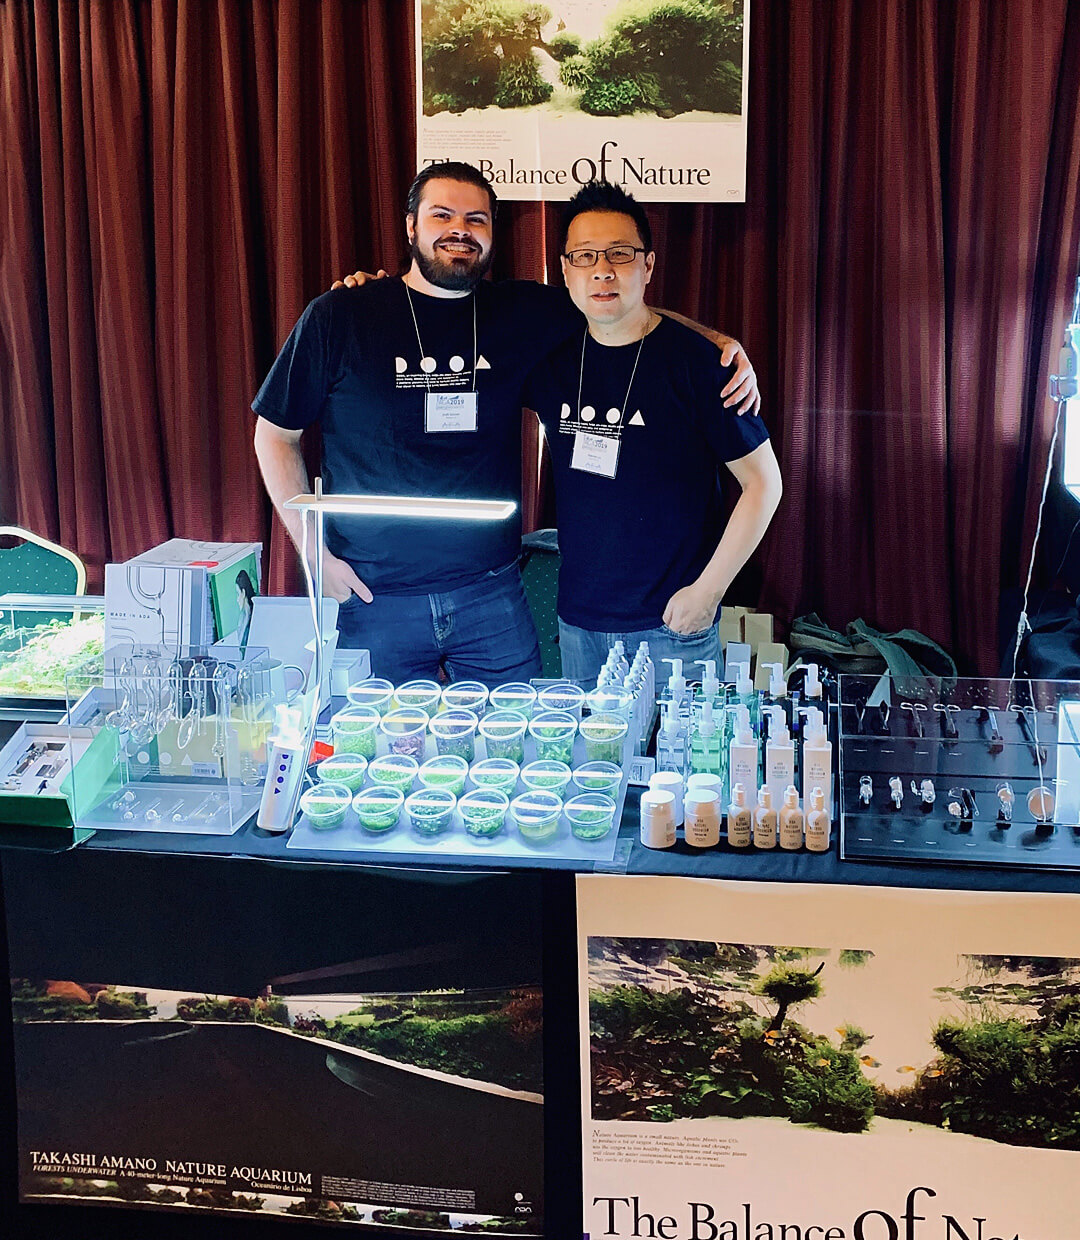 AGA 2019 Convention Report